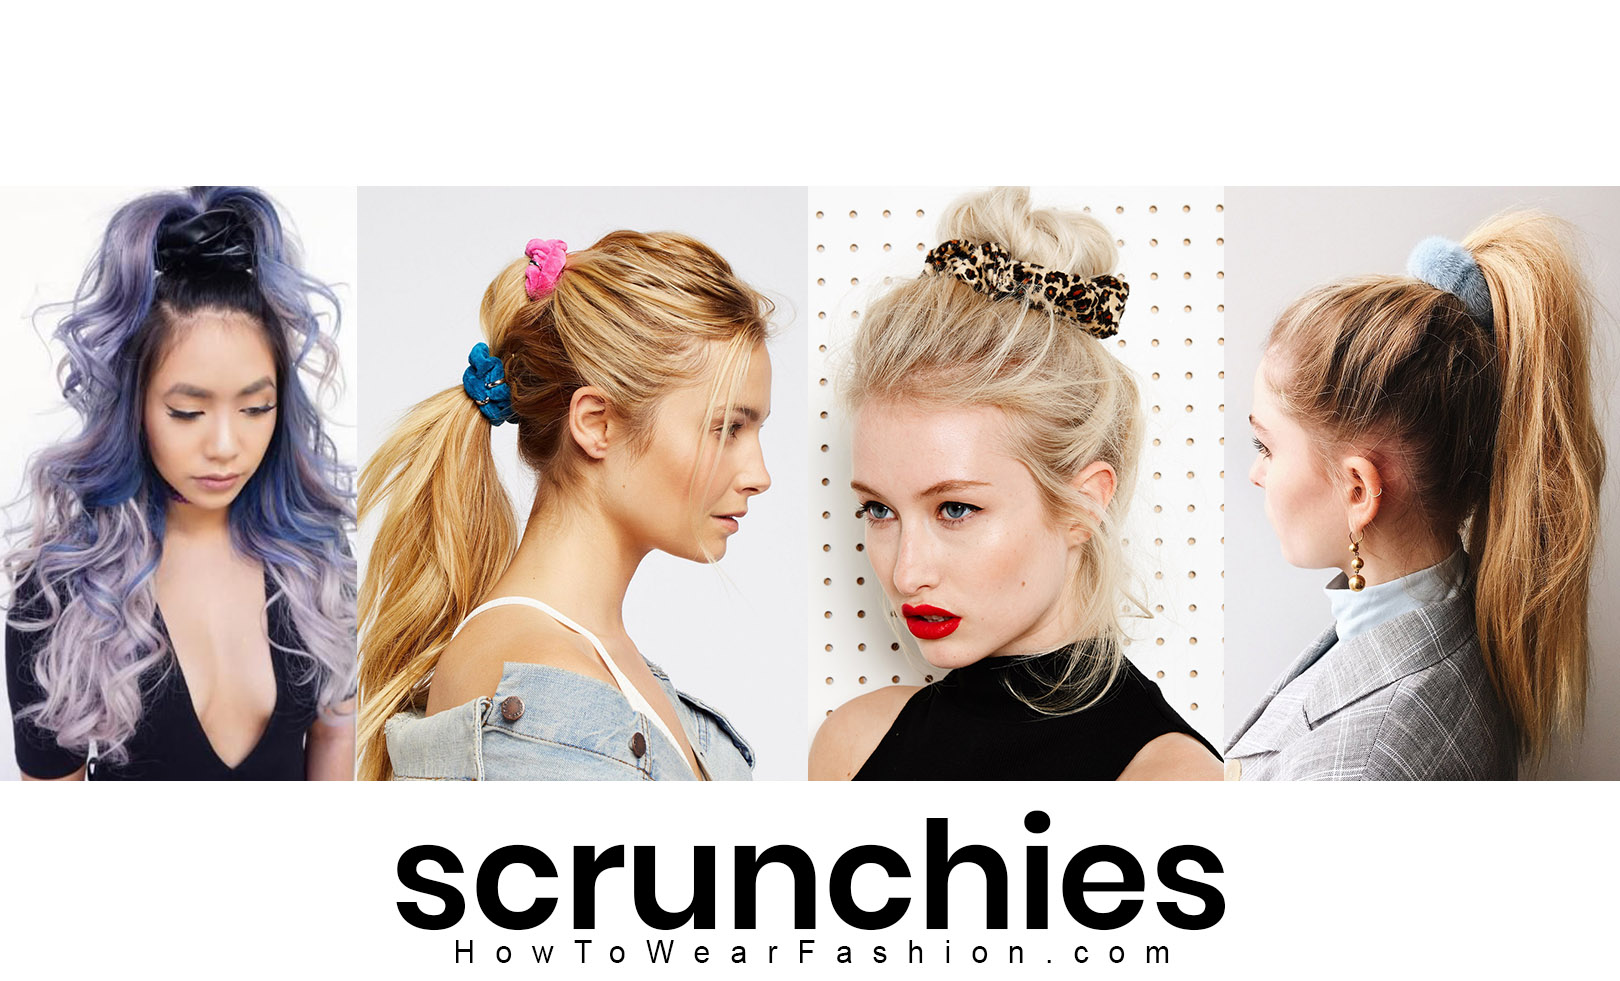 Scrunchies are B-A-C-K! Have fun with scrunchies in different colors, prints and textures. Definitely coordinate the color of your scrunchie with your outfit - match or complement a color in your clothes, or use a scrunchie in a color similar to your hair color.